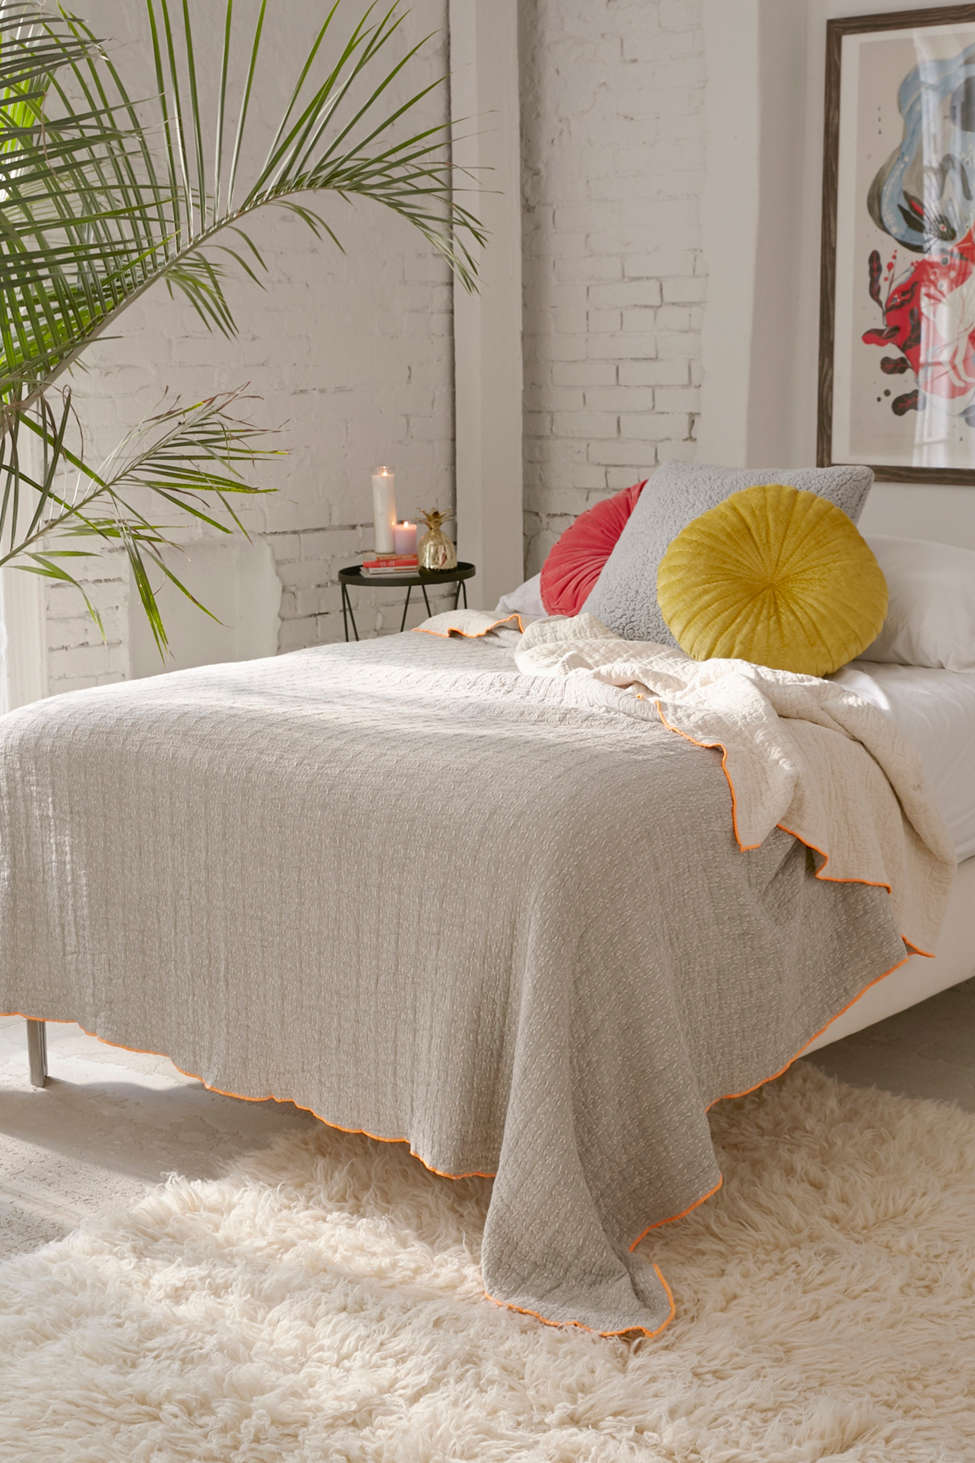 Slide View: 1: Stitched Jacquard Reversible Bed Blanket